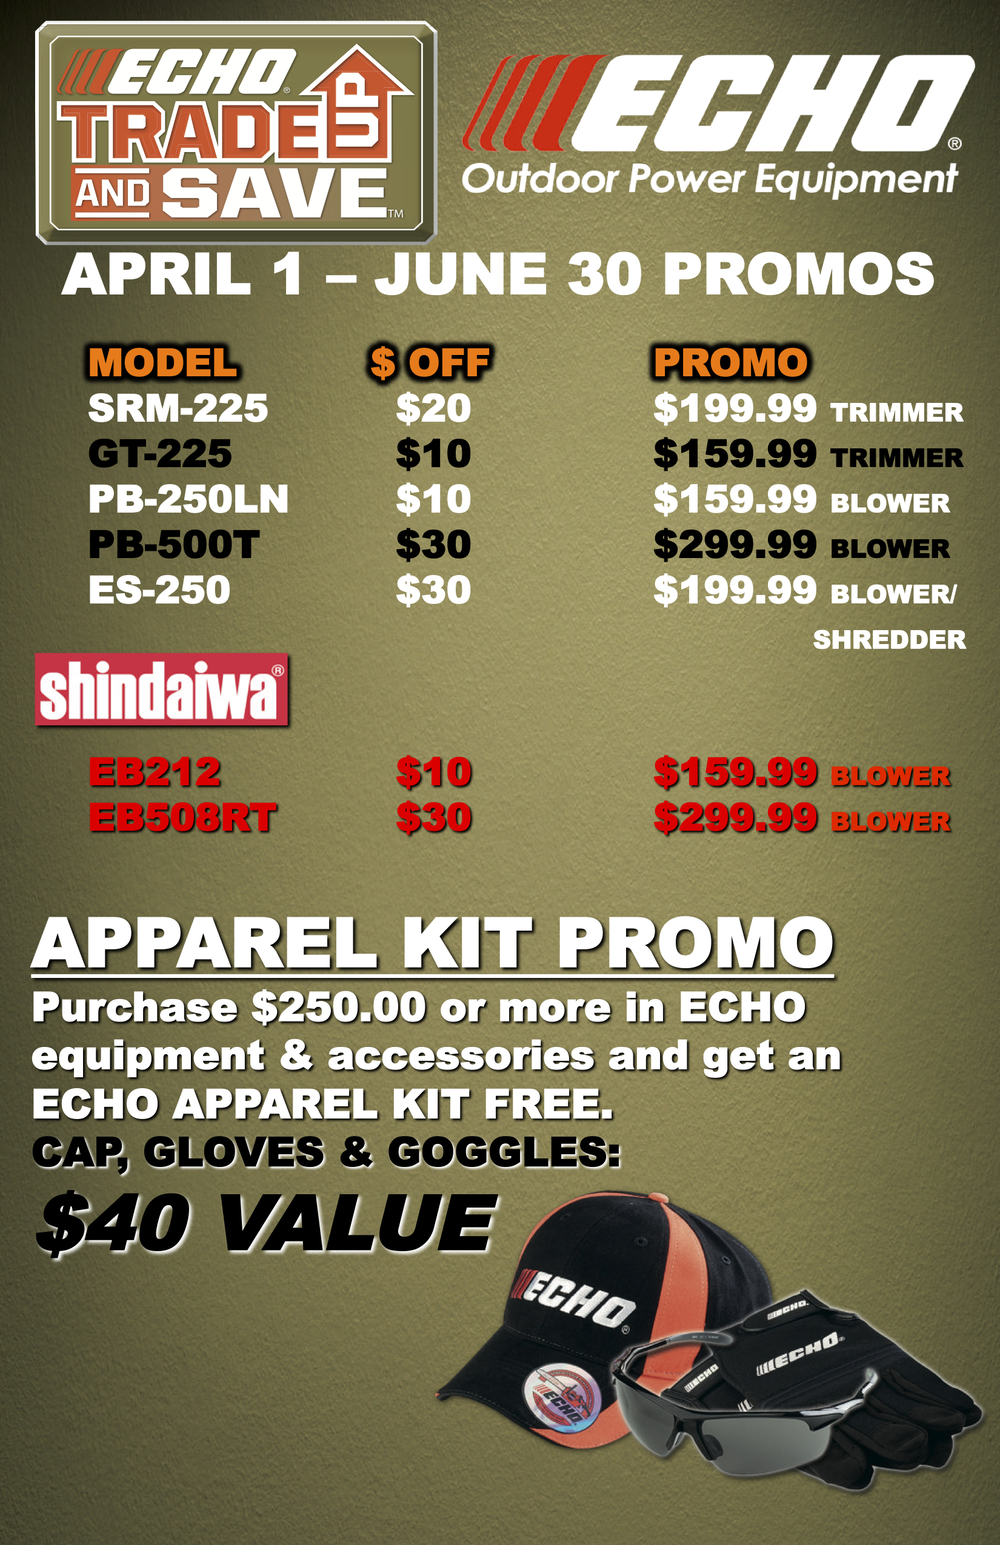 ECHO SHINDAIWA APRIL TO JUNE PROMOS-email.jpg